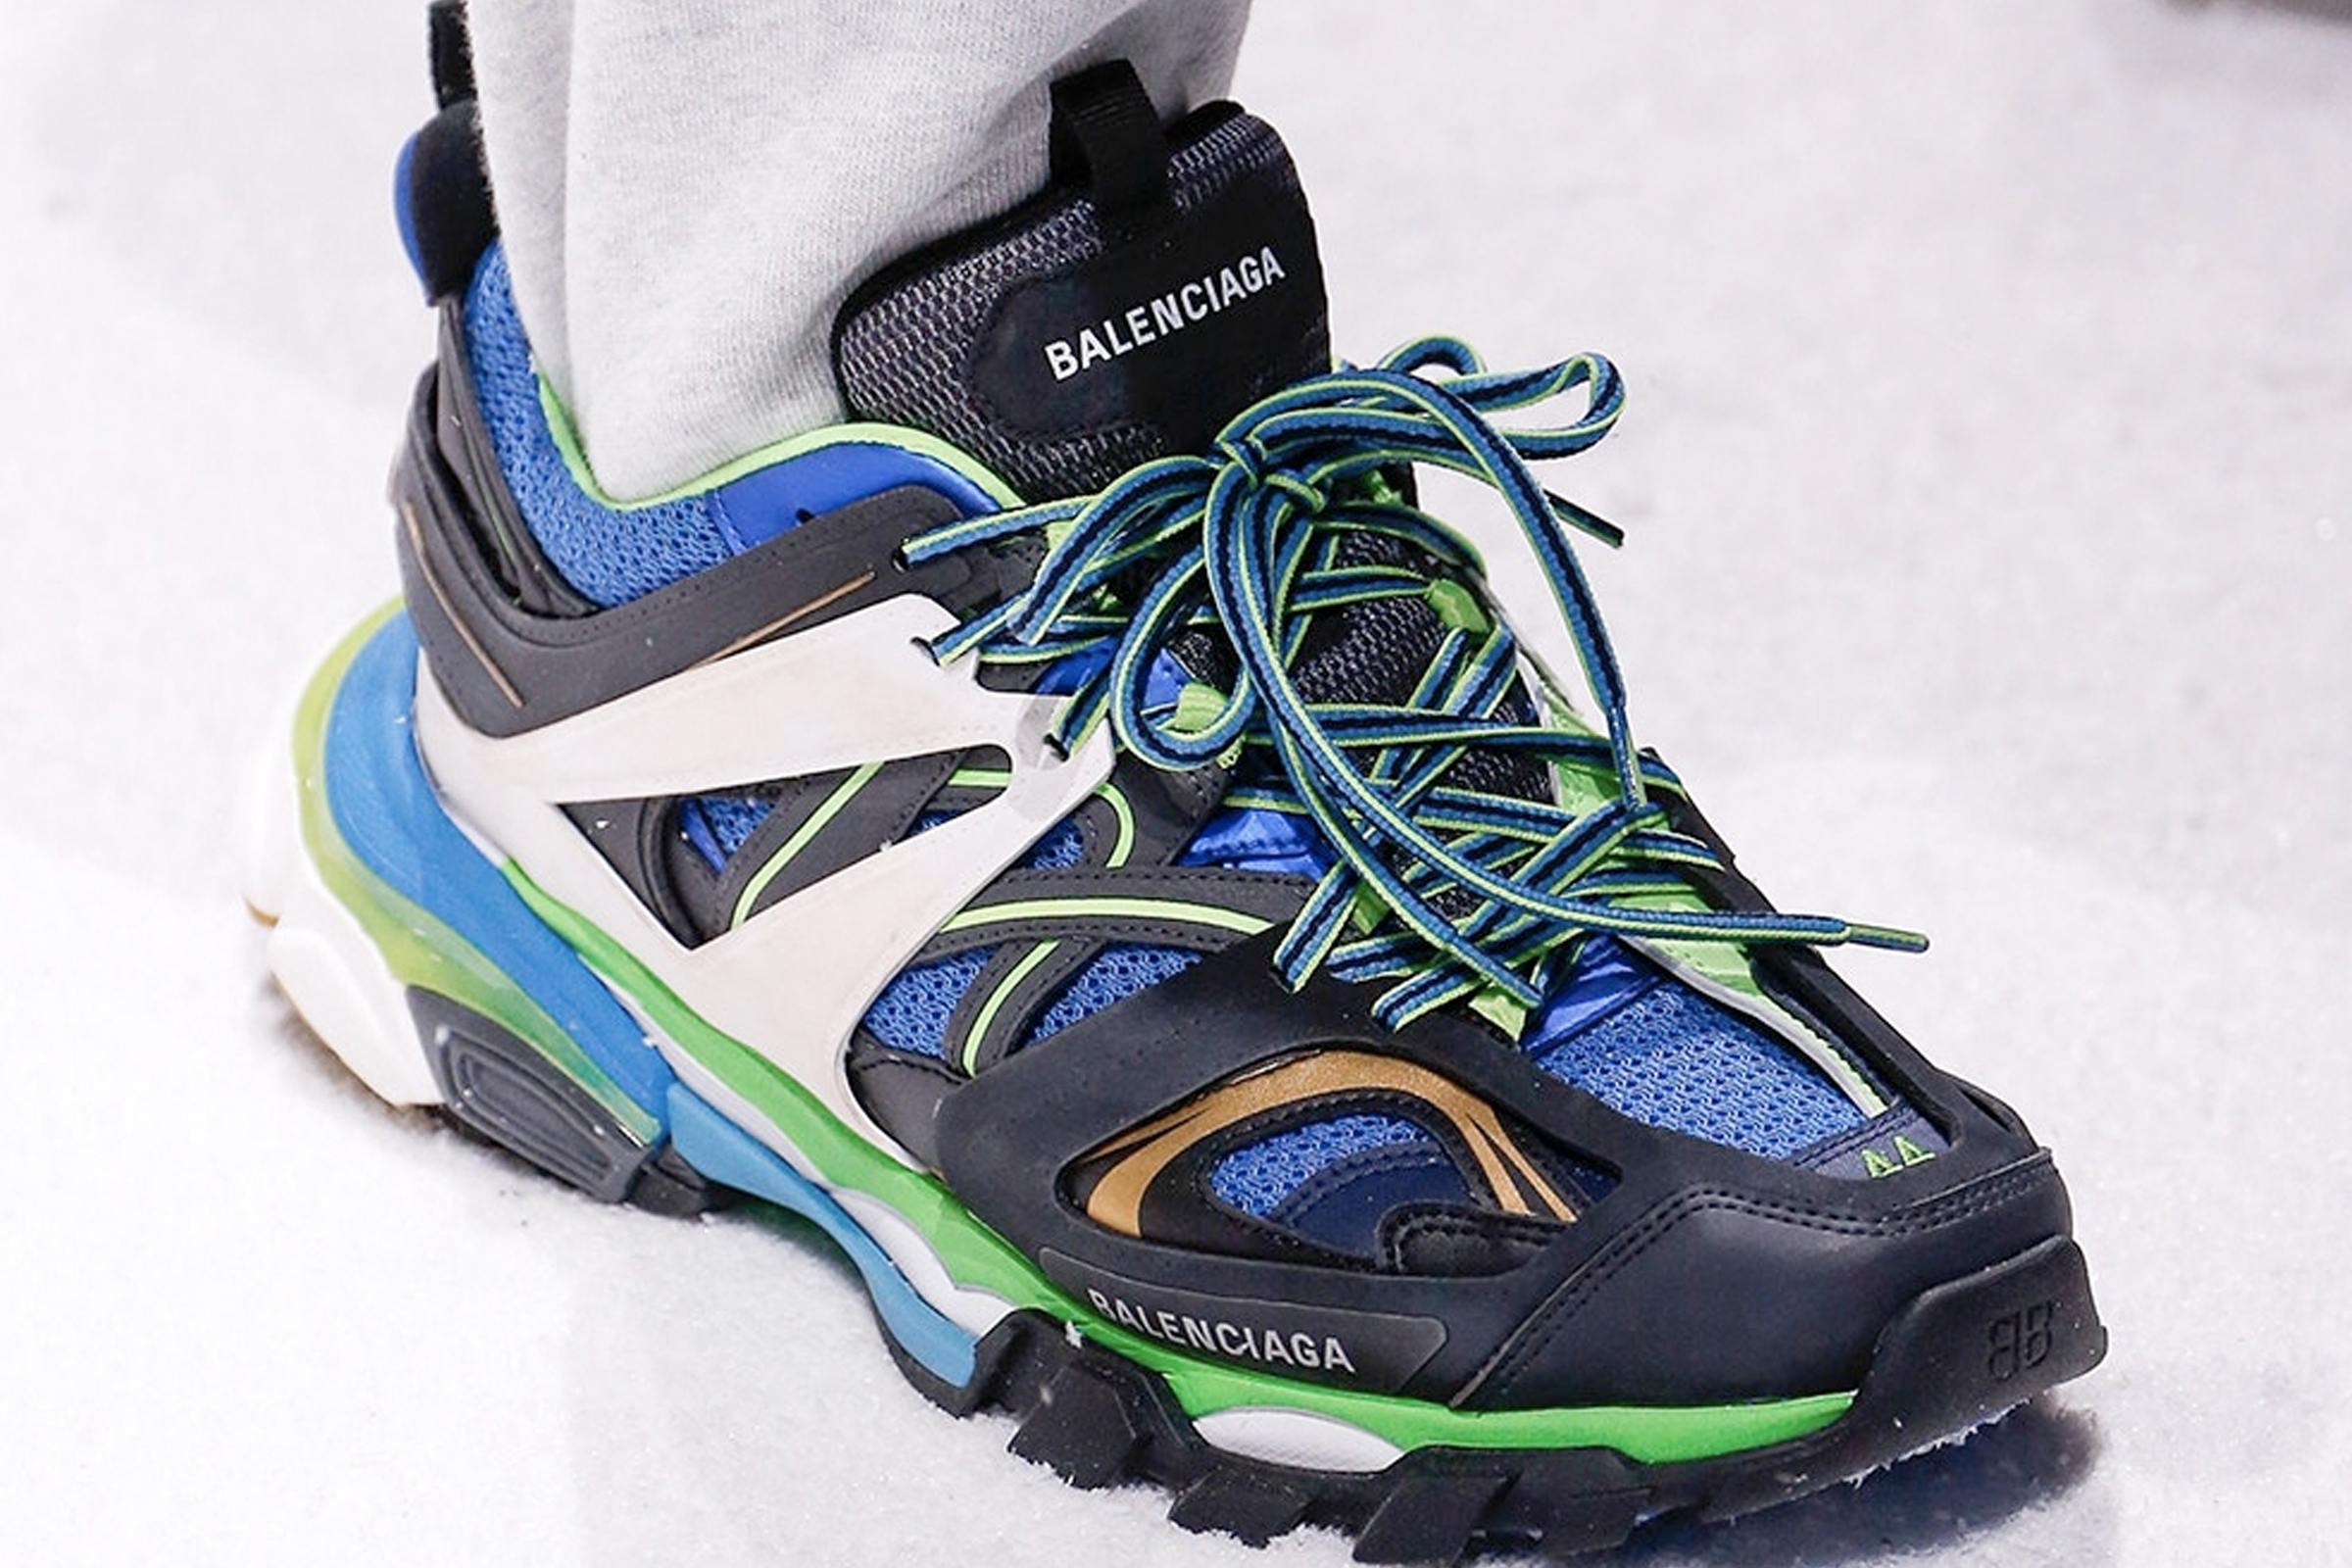 Balenciaga Previews New Fall Winter 2018 Sneaker - Balenciaga Fw ... b57ecb662